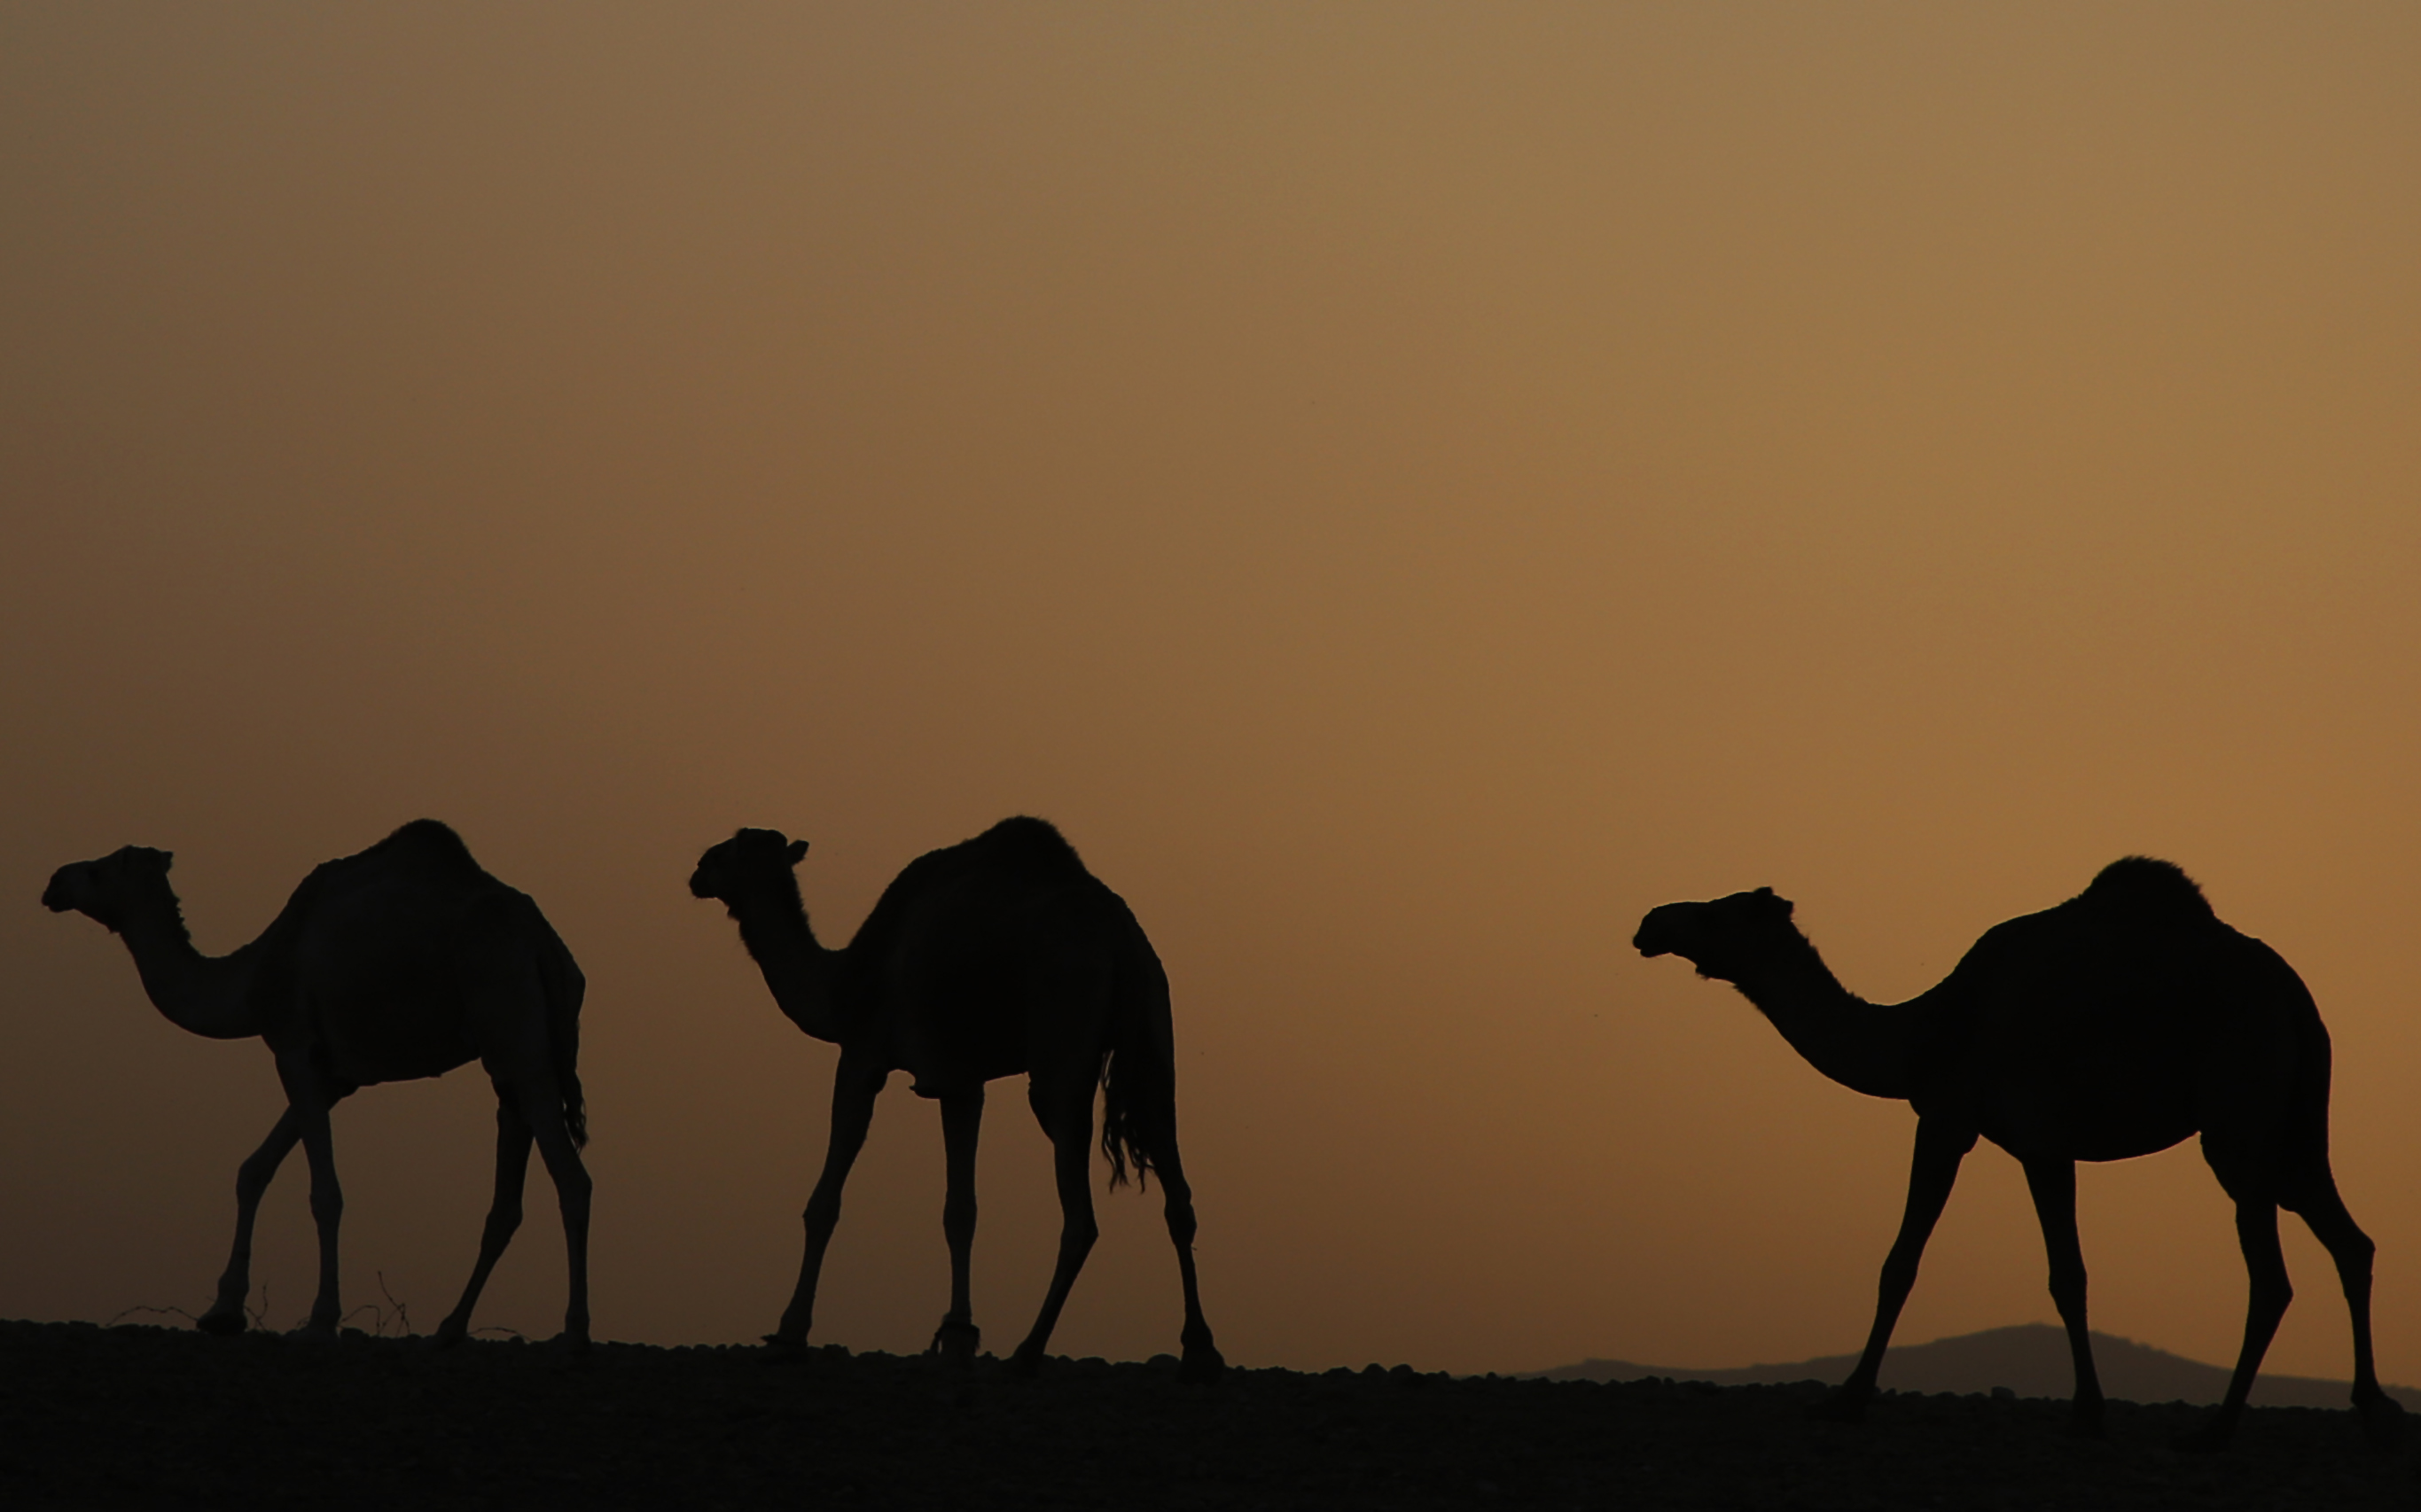 Camels in Africa may have been quietly spreading prion disease for decades